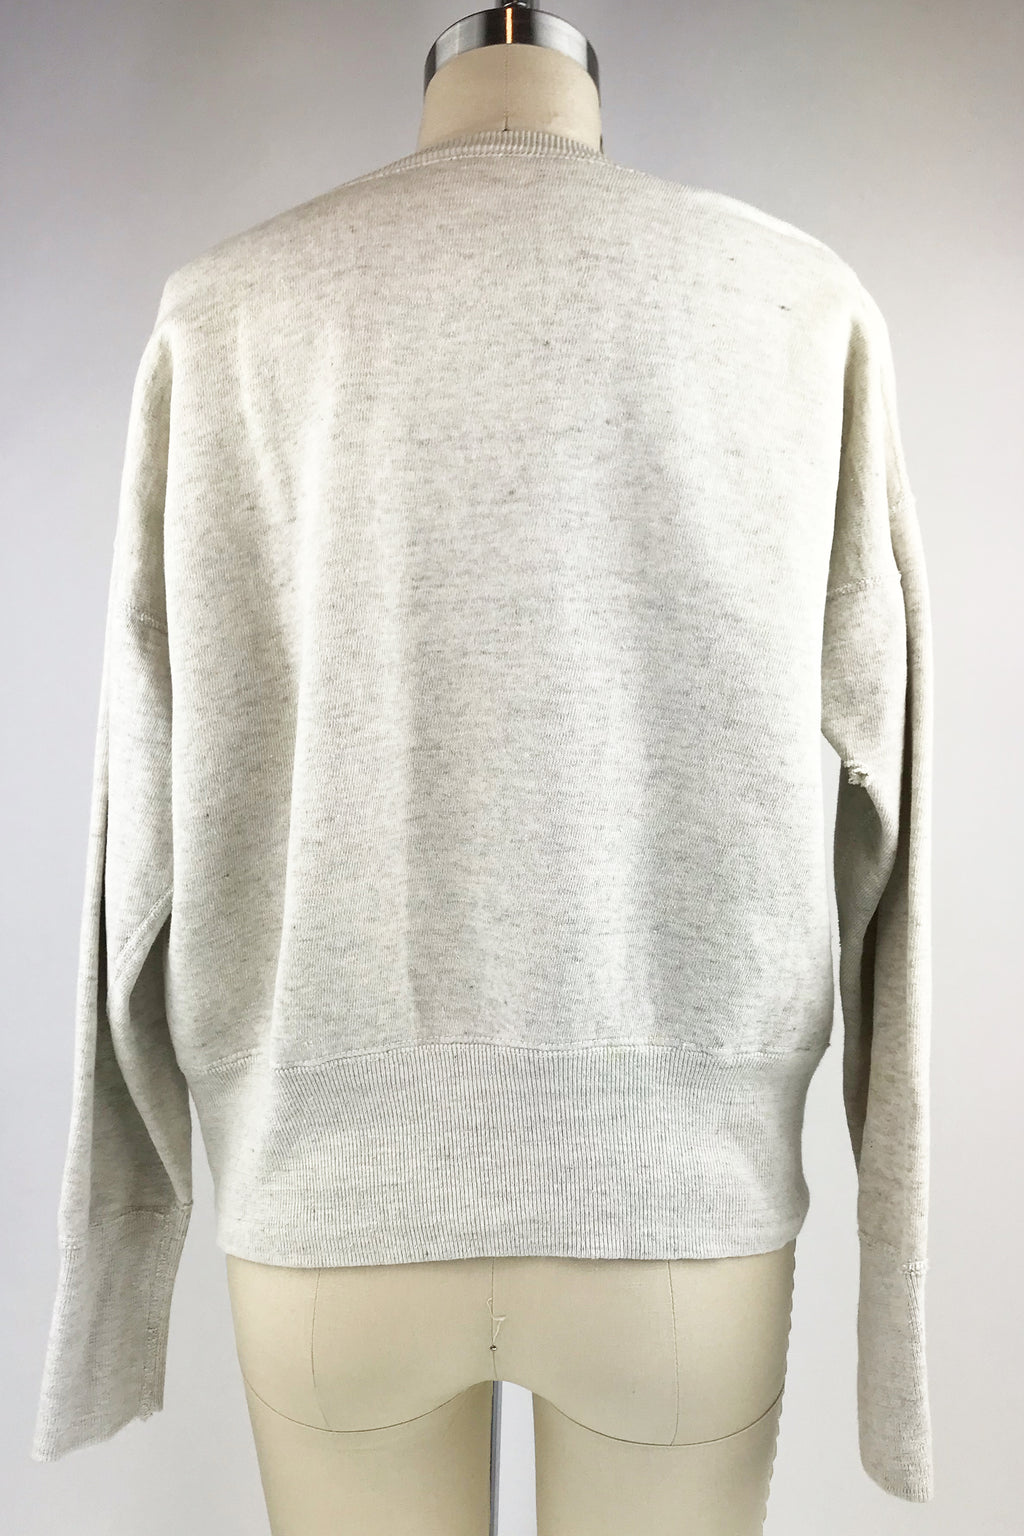 1950s Athletic Sweatshirt